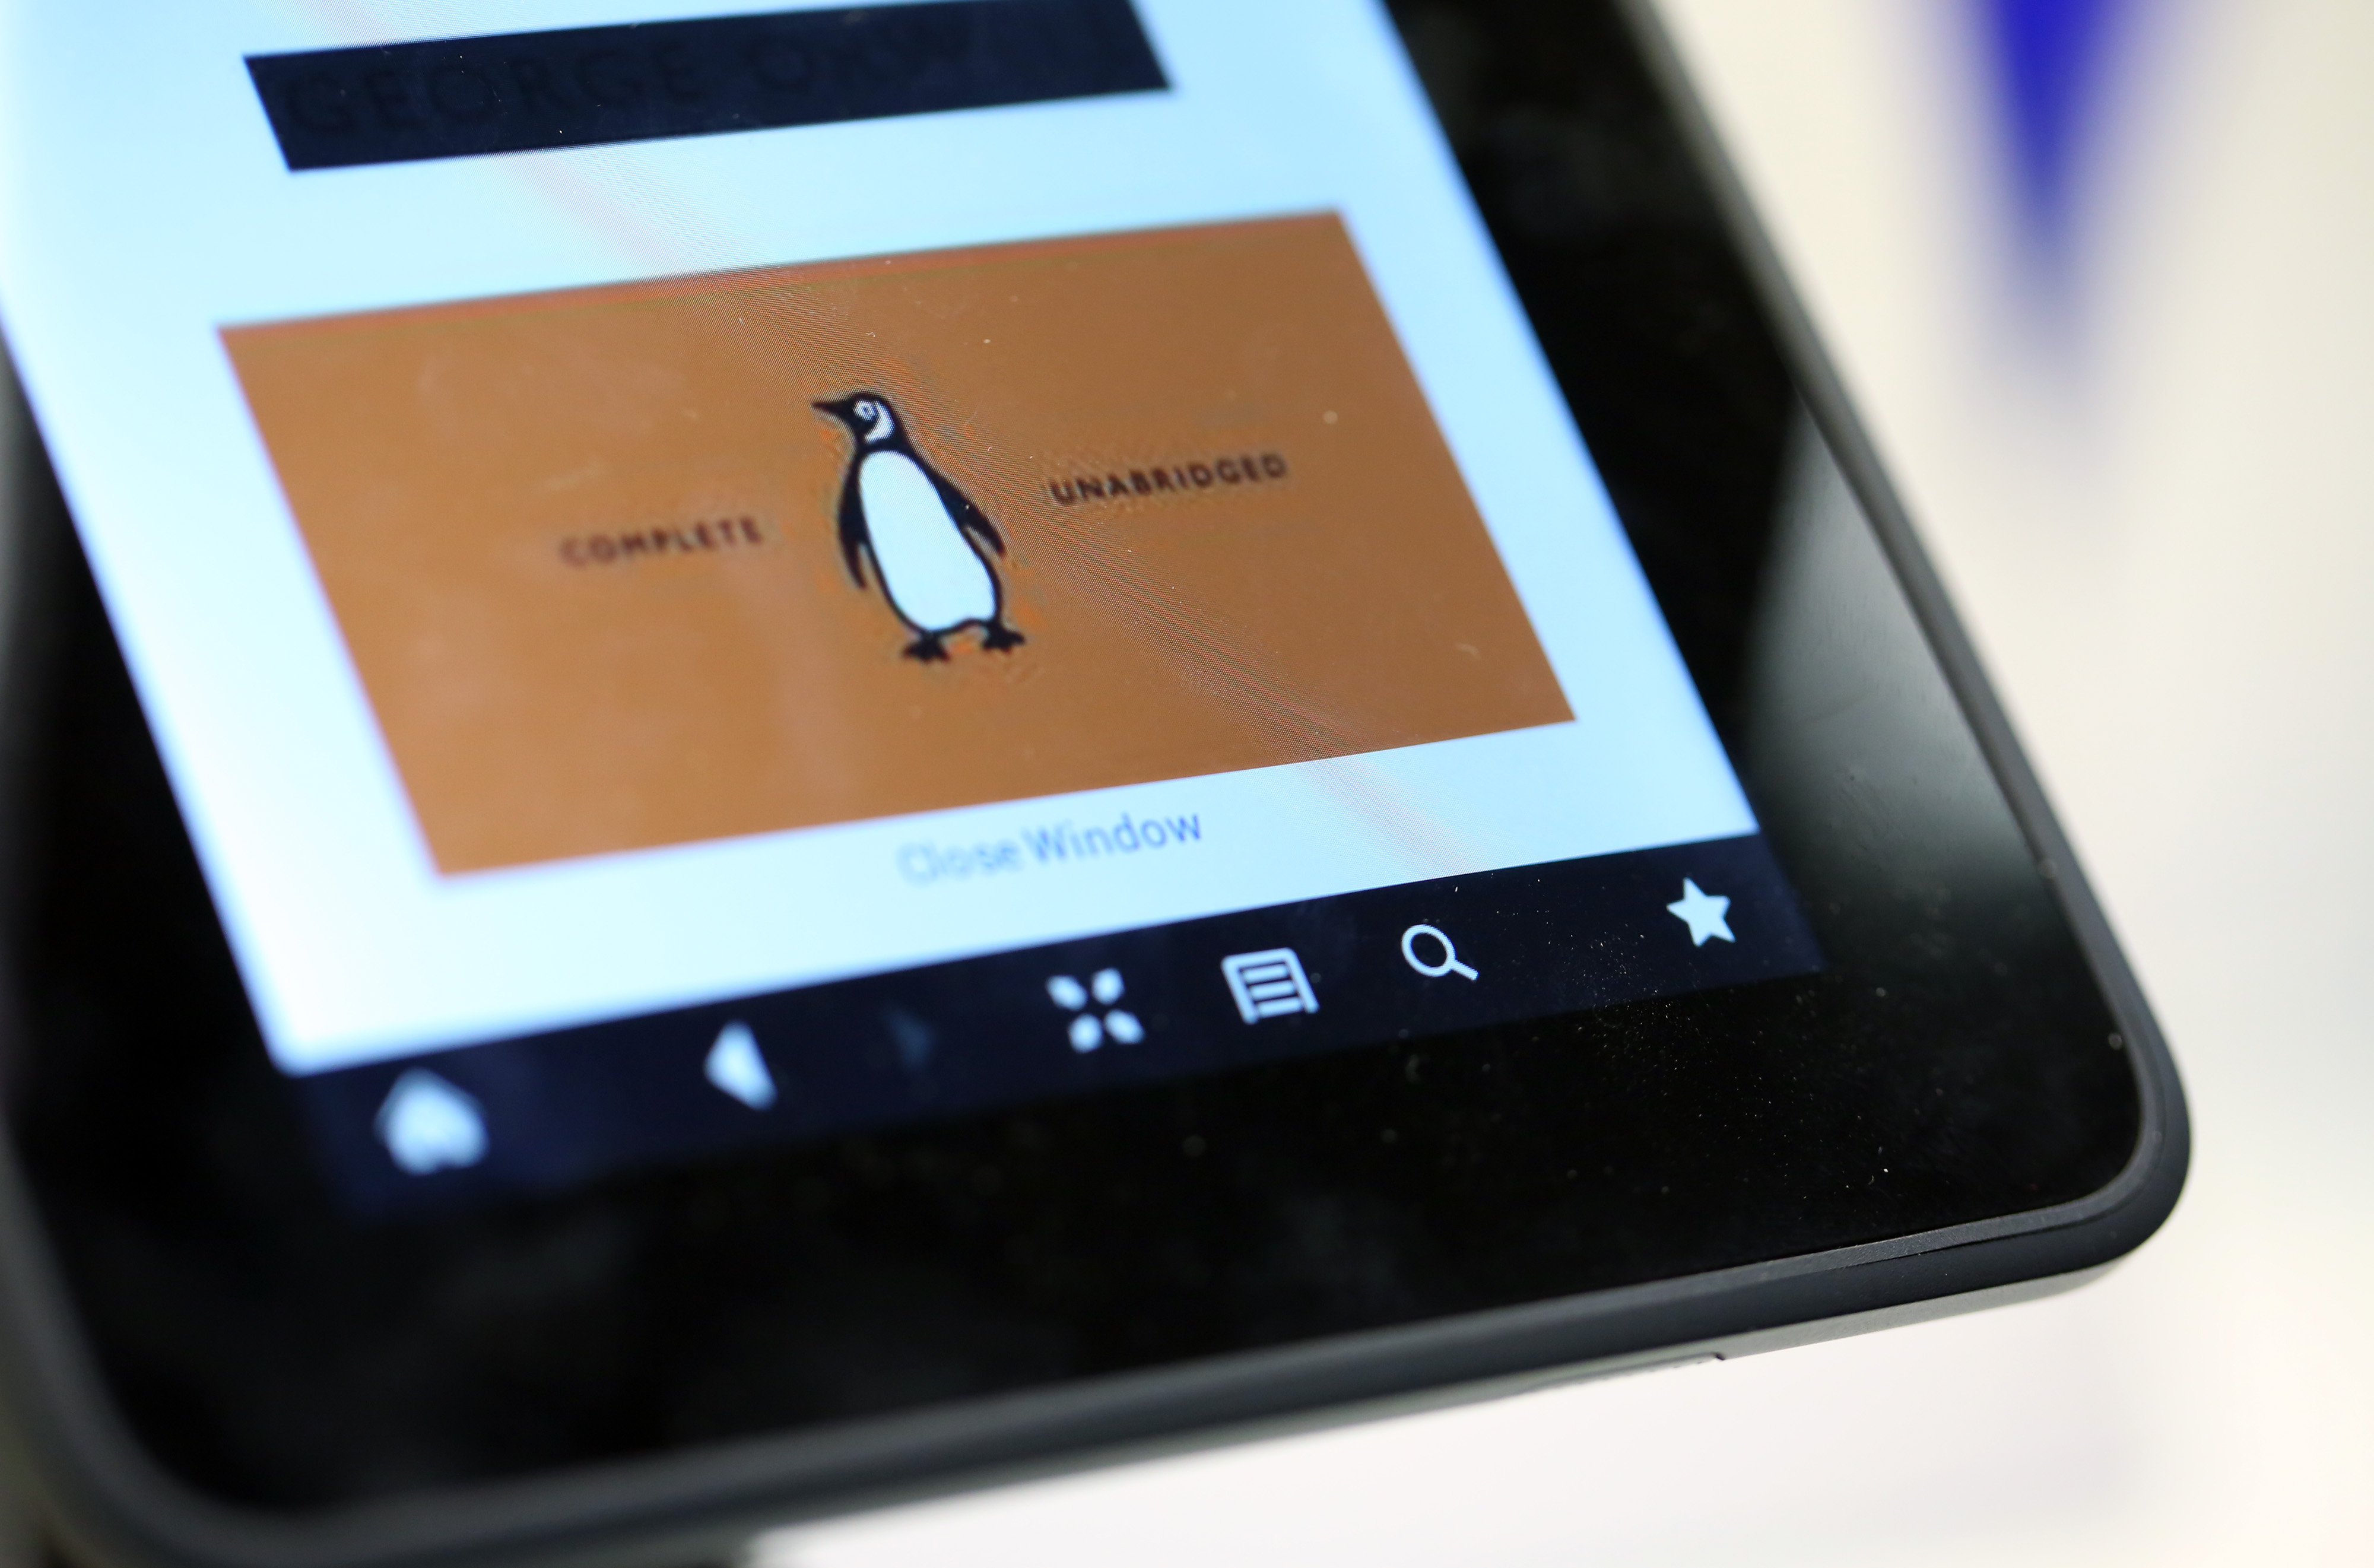 The logo of the Penguin publishing house, part of Pearson Plc, is seen on a Kindle Fire HD e-reader at a bookstore in London, U.K., on Friday, April 5, 2013.